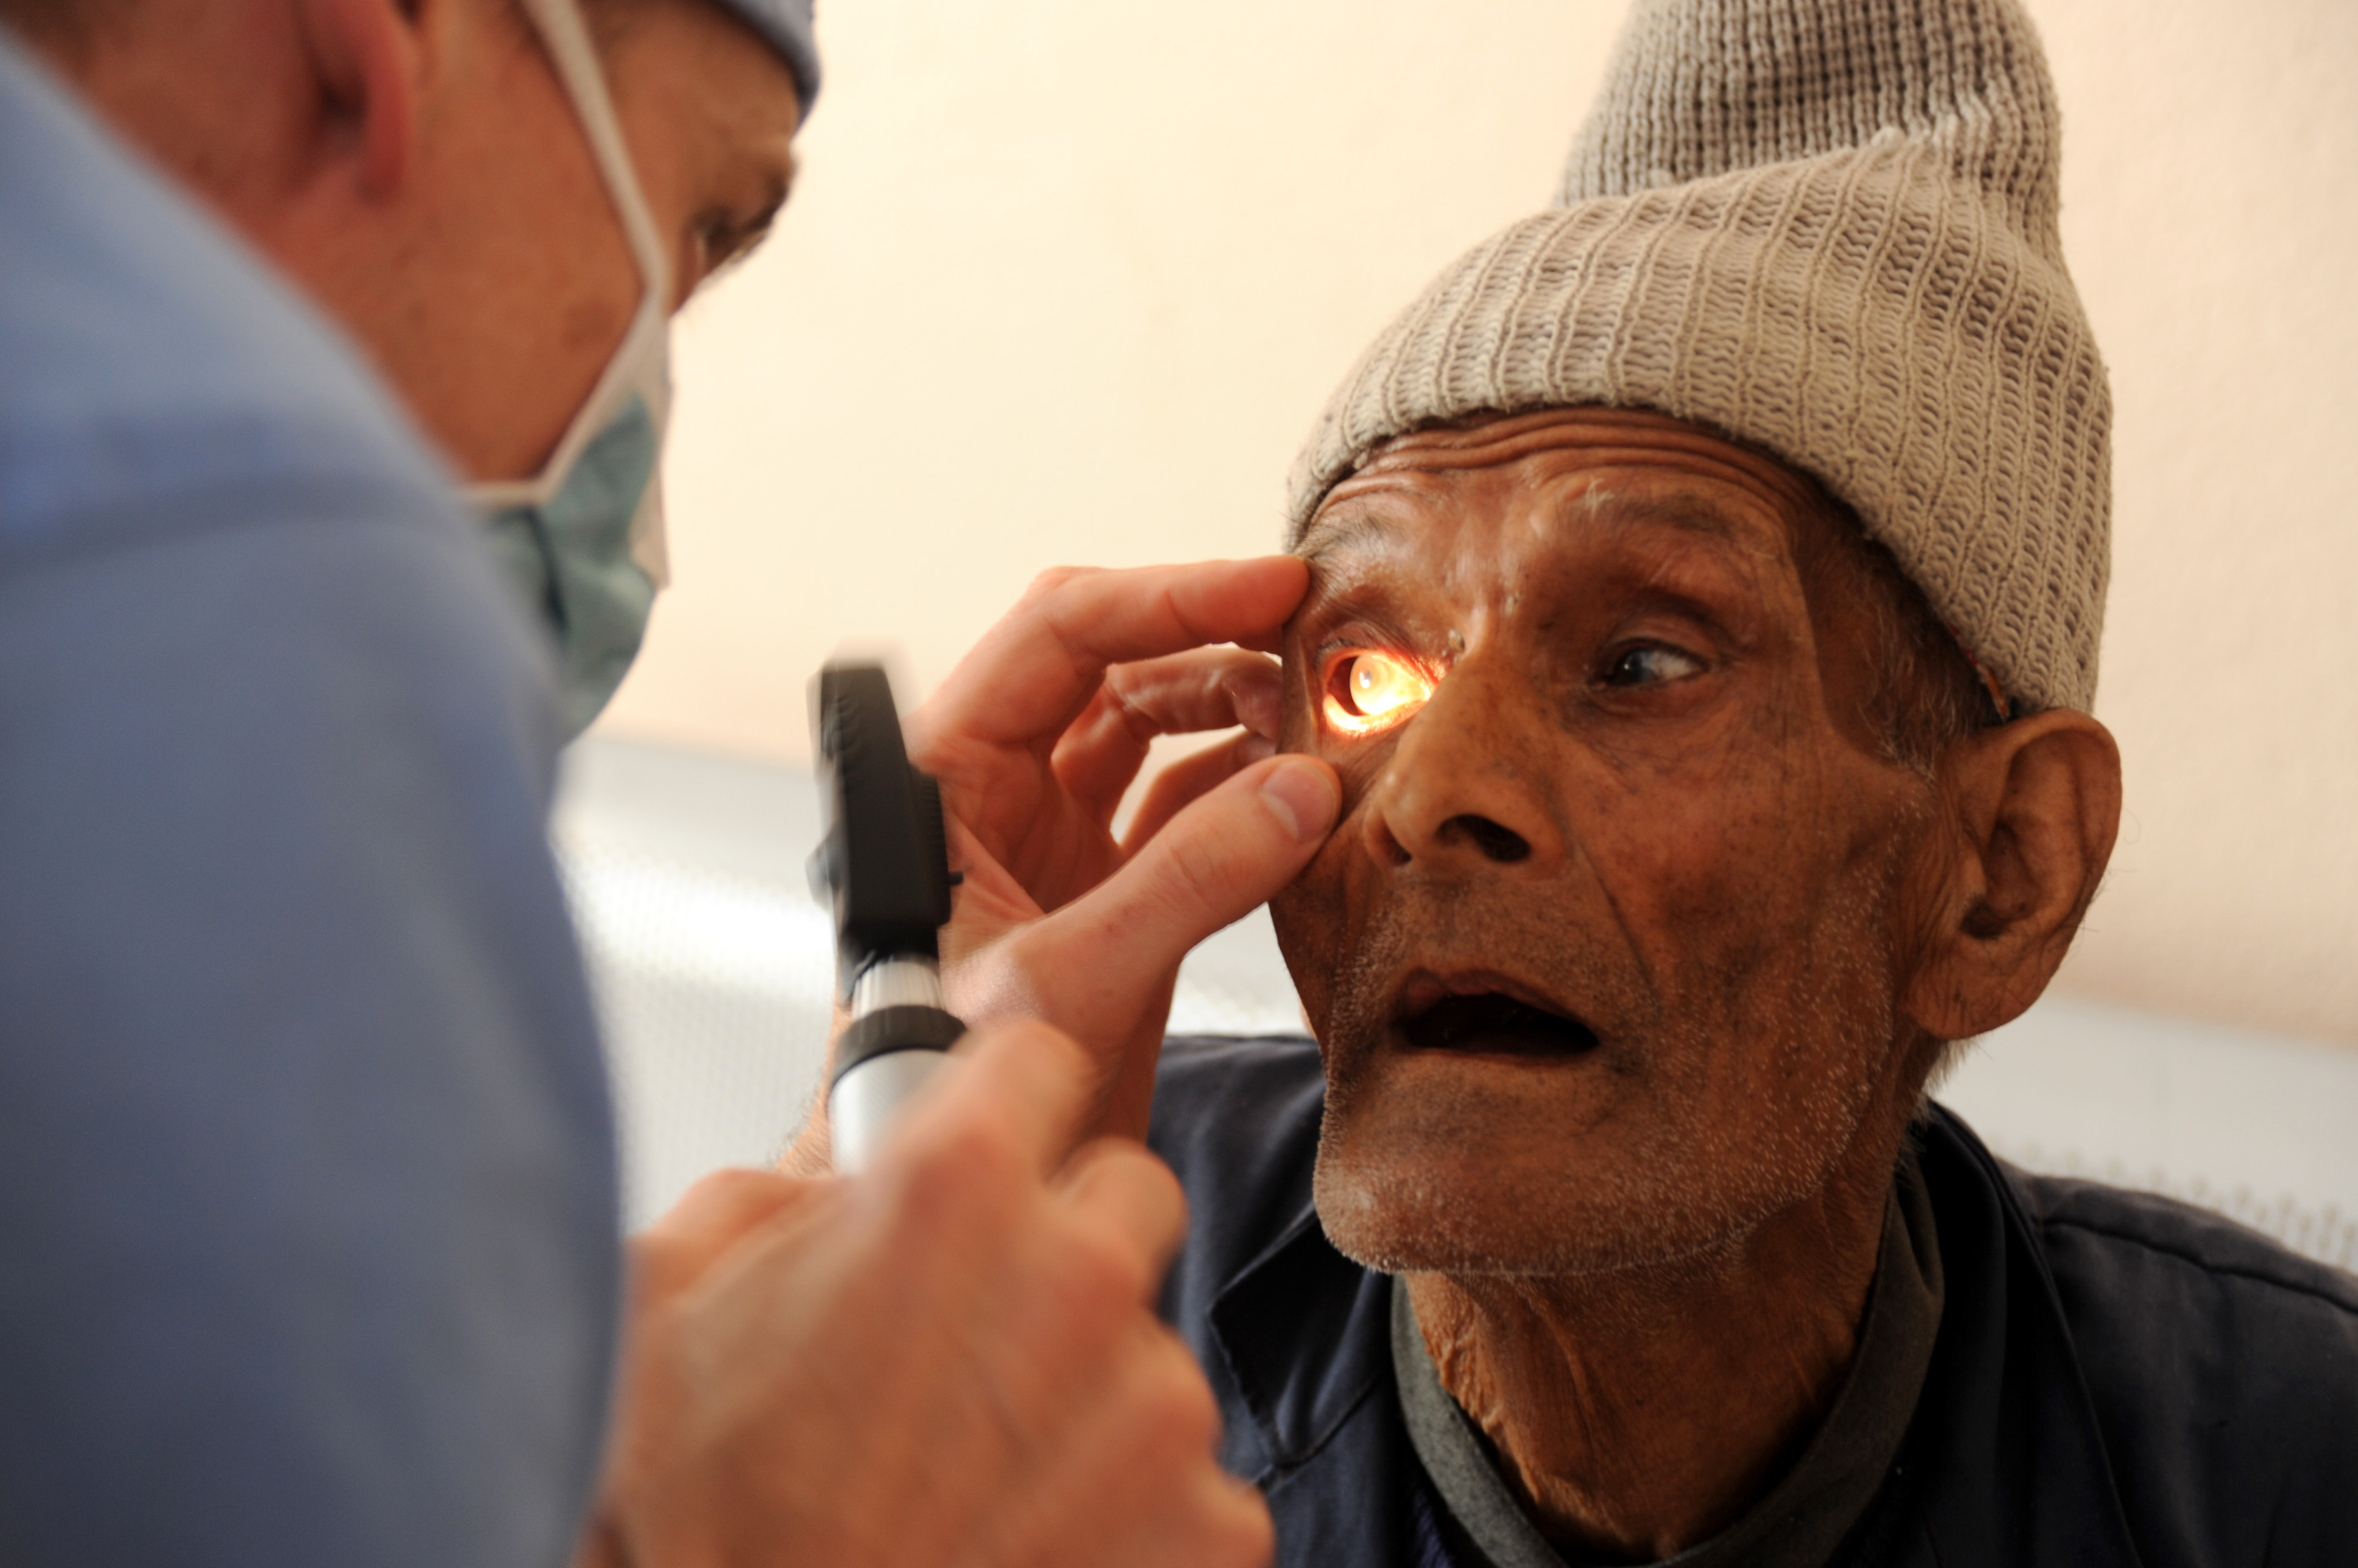 Dr. Carey Dozier does a preliminary examination of a patient at an eye camp supported by the Druk Amitaba Monastery in Sitapaila, Kathmandu